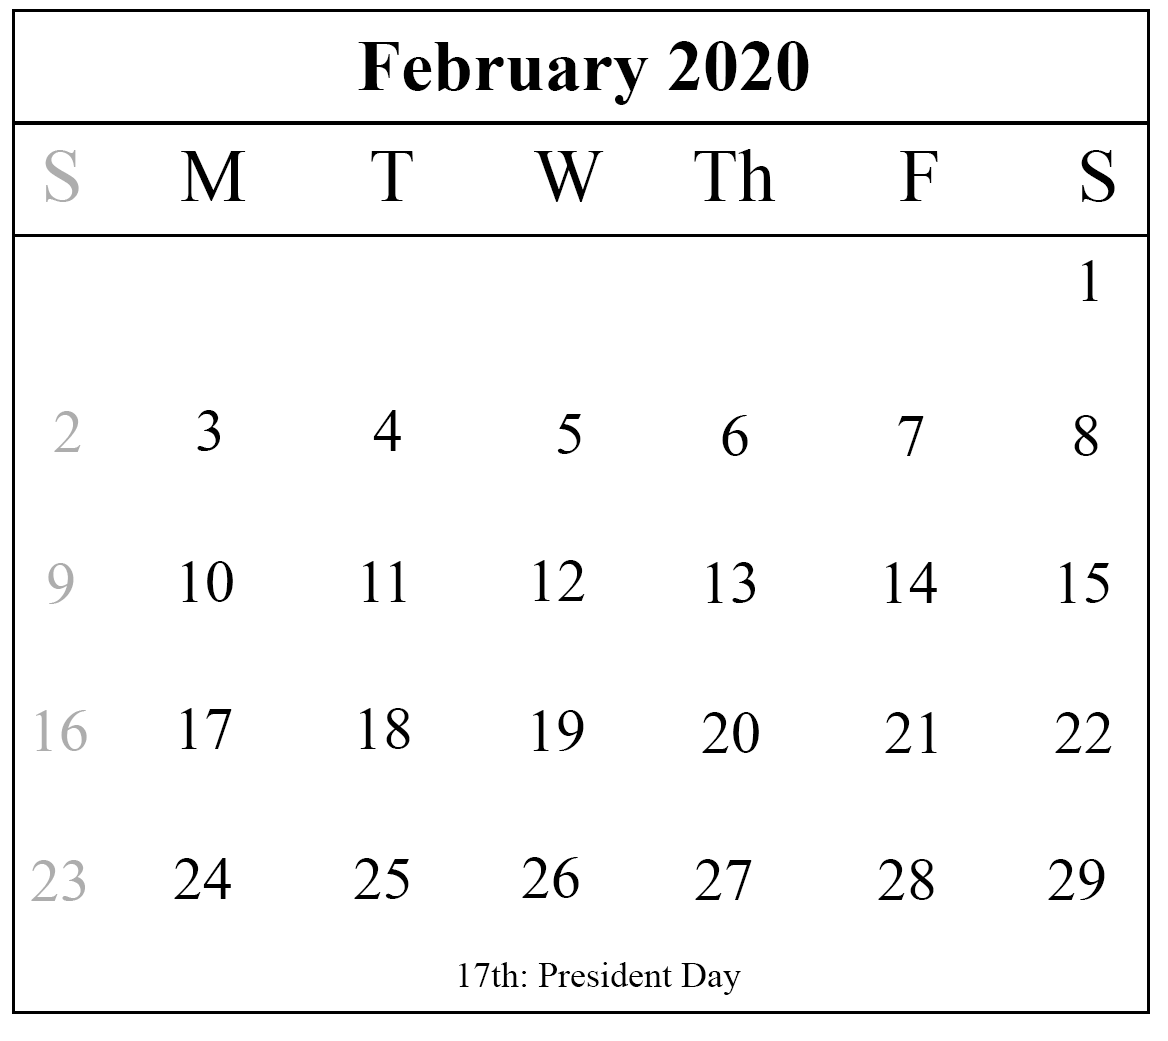 February 2020 Calendar With Holiday